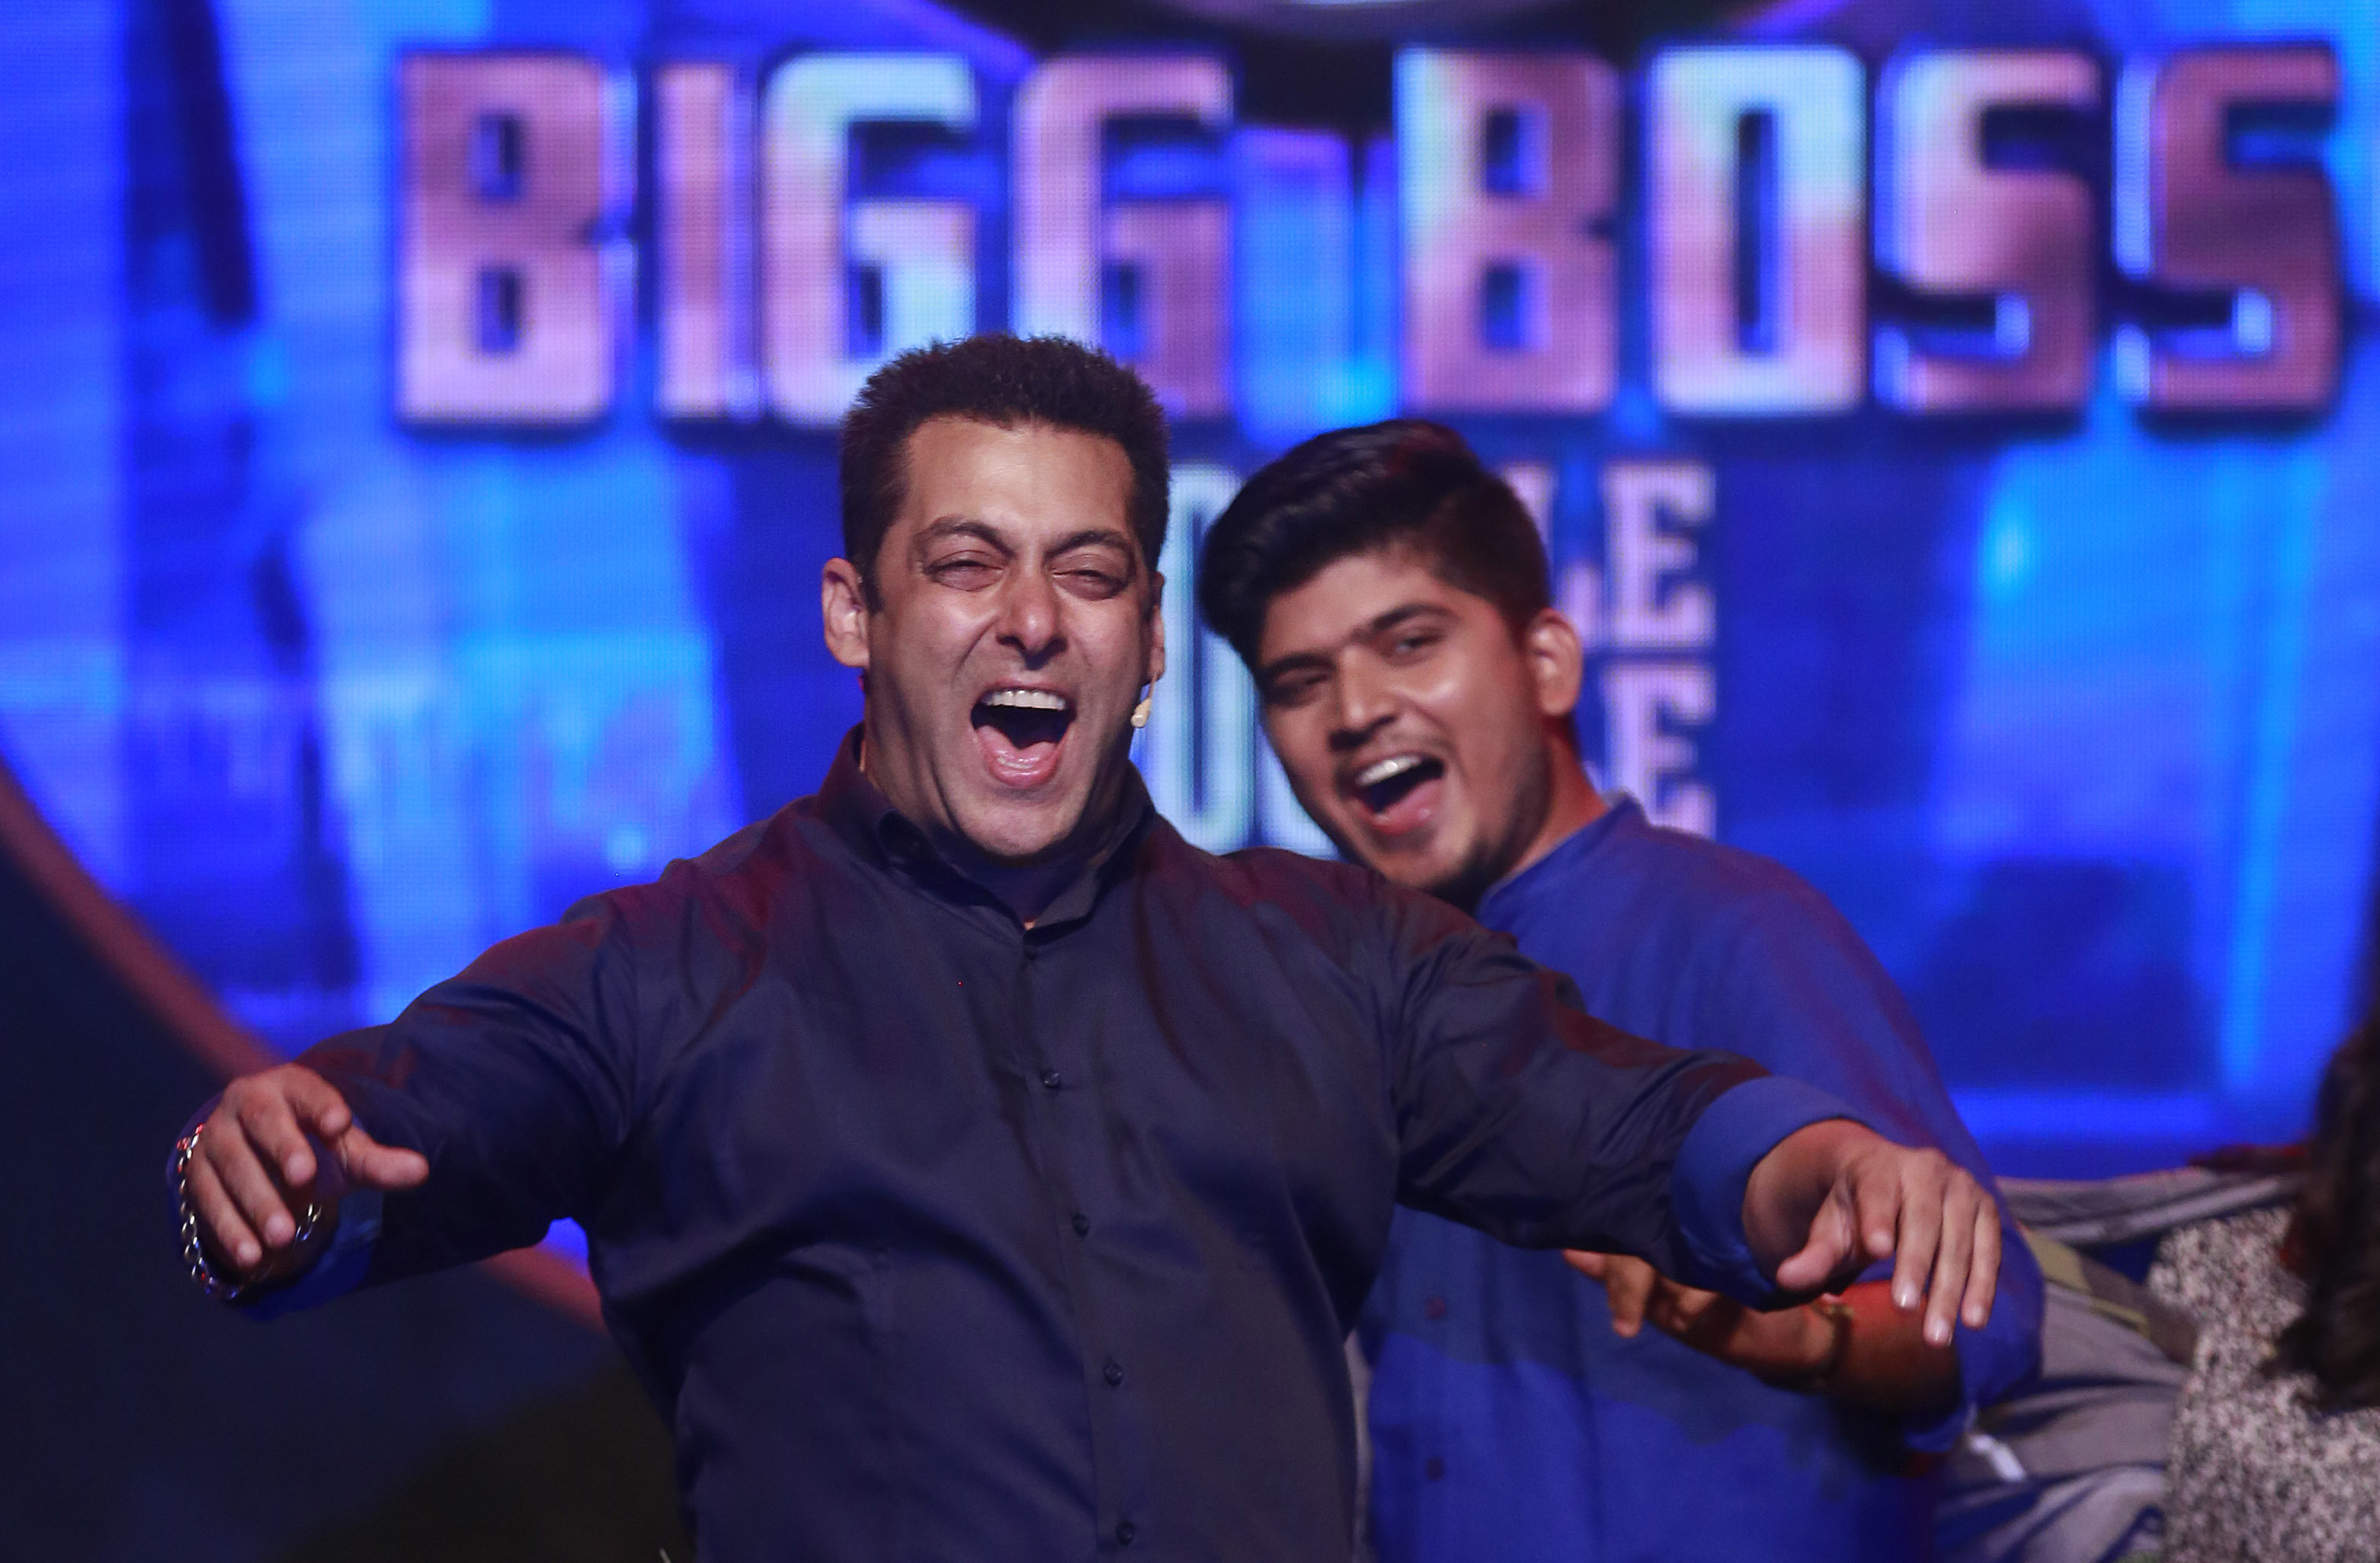 Bollywood actor Salman Khan performs during a news conference to announce the ninth season of reality television show 'Big Boss' in Mumbai, India, Monday, Sept. 28, 2015